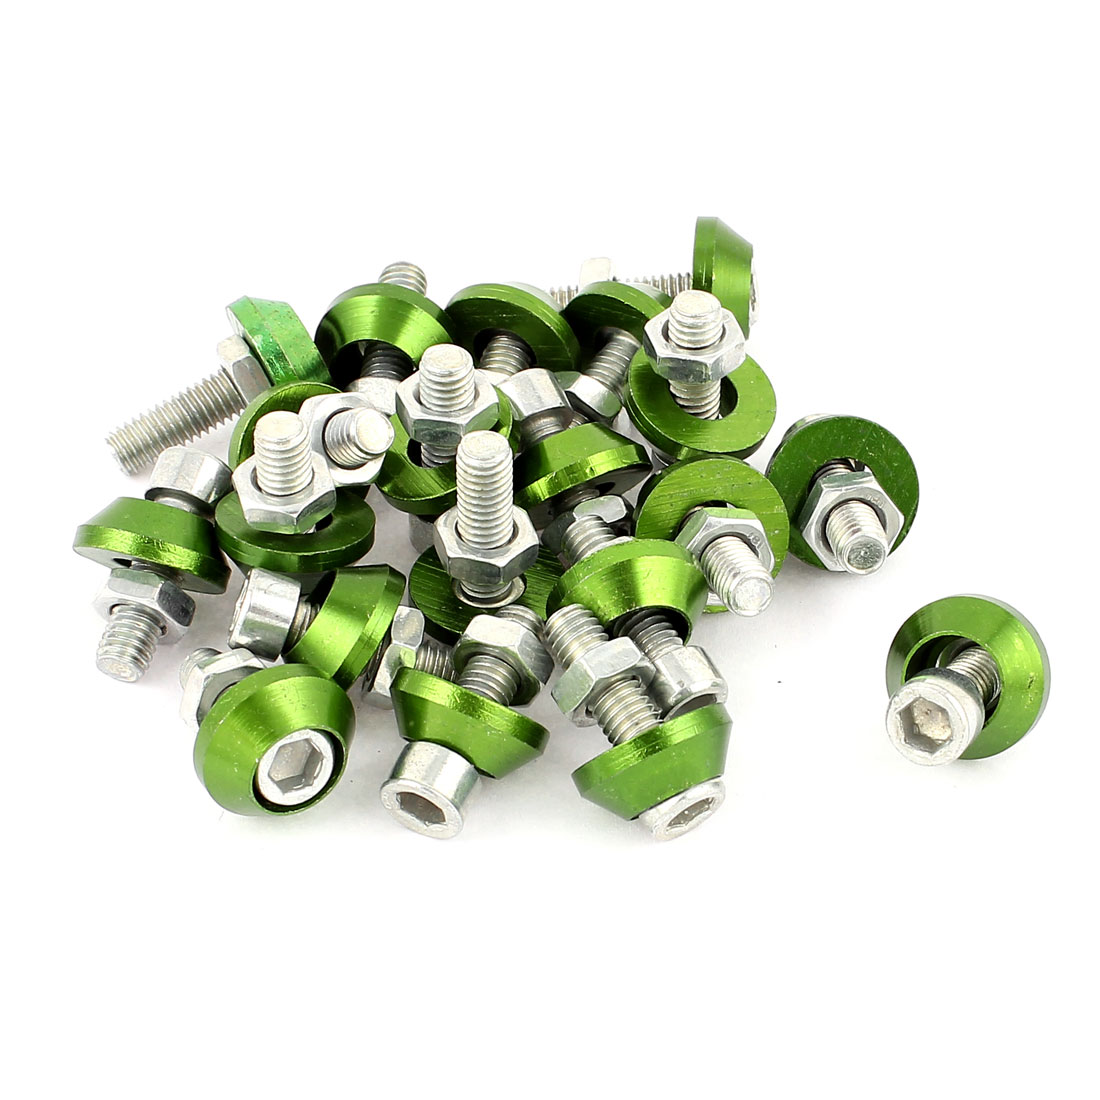 Motorcycle License Plate Bolt Hex Cap Screws Green Silver Tone 20 Pcs